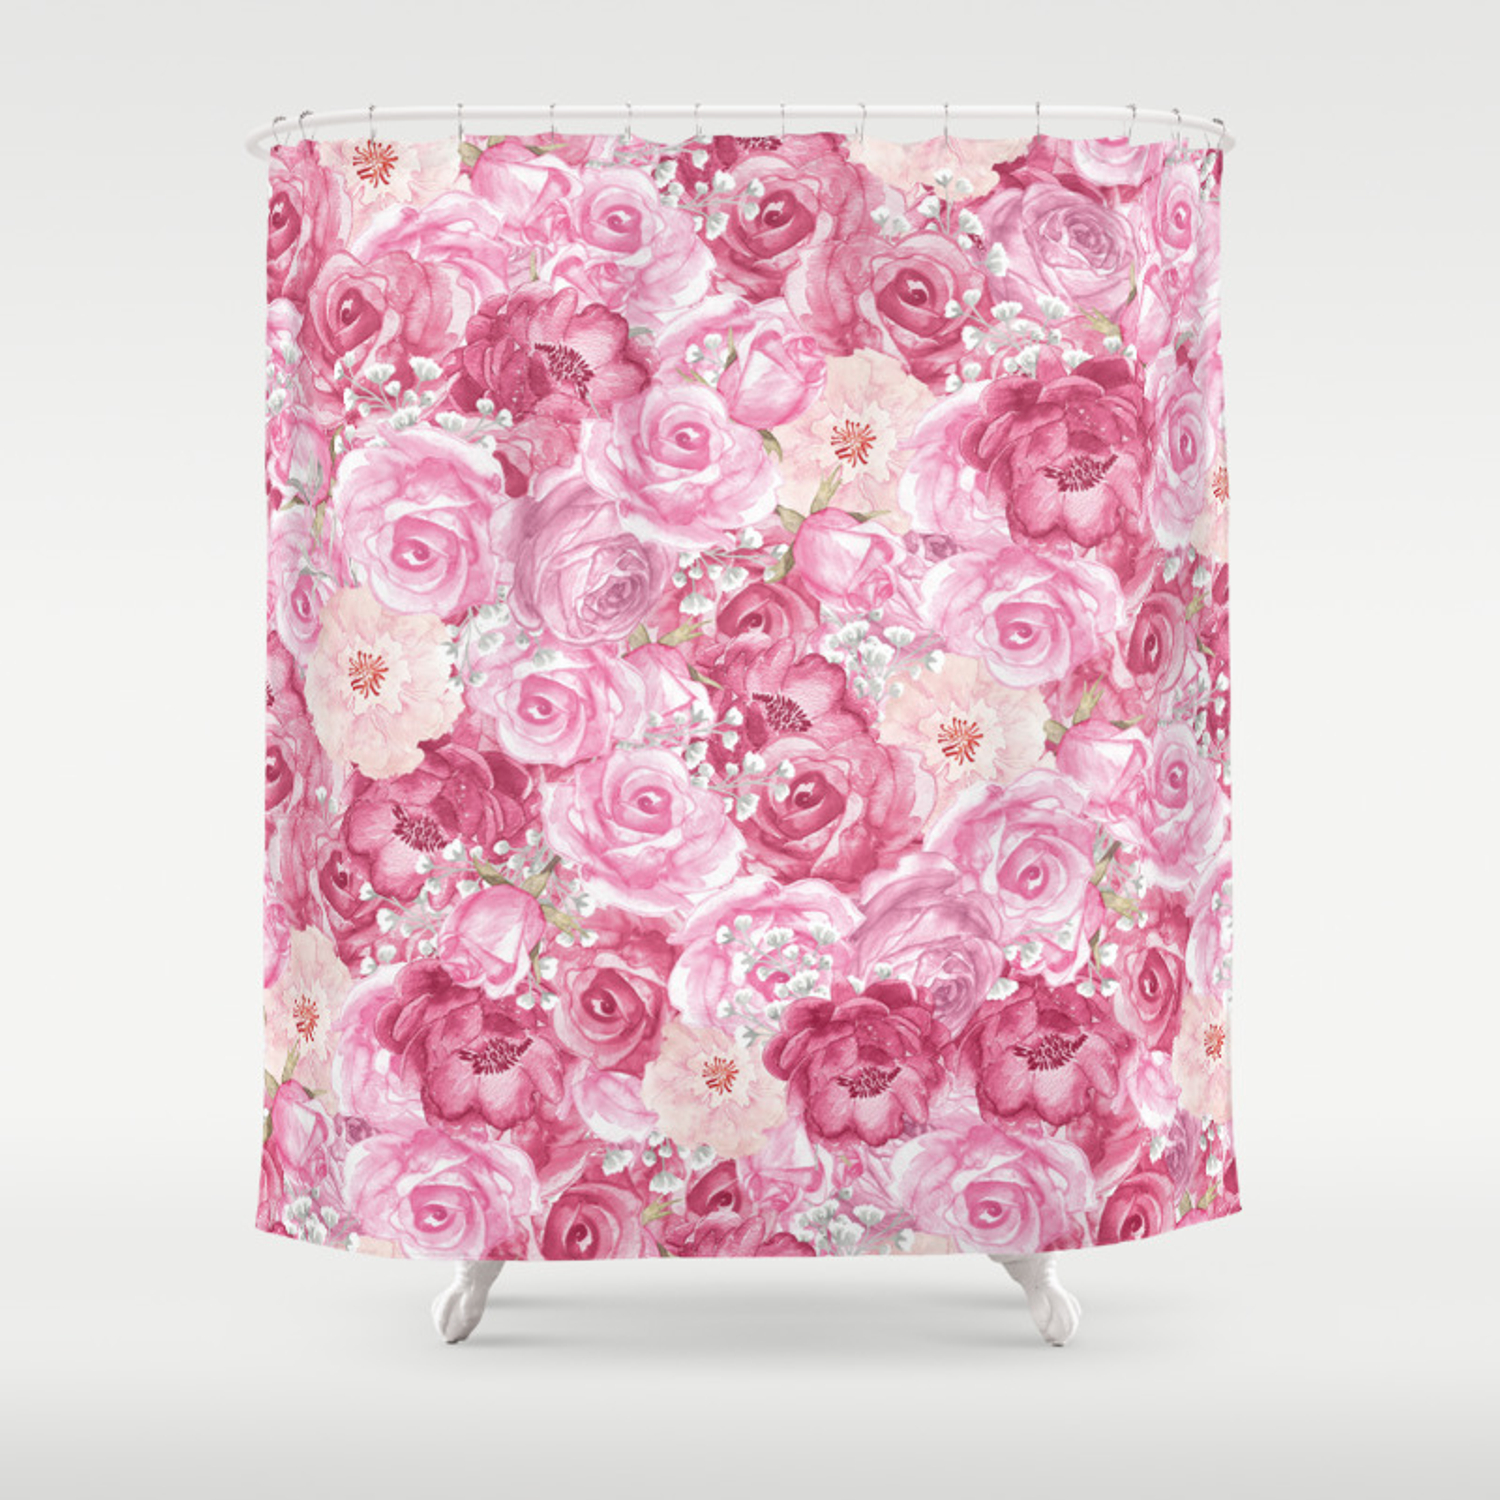 Hand Painted White Blush Pink Coral Floral Shower Curtain By Pink Water Society6